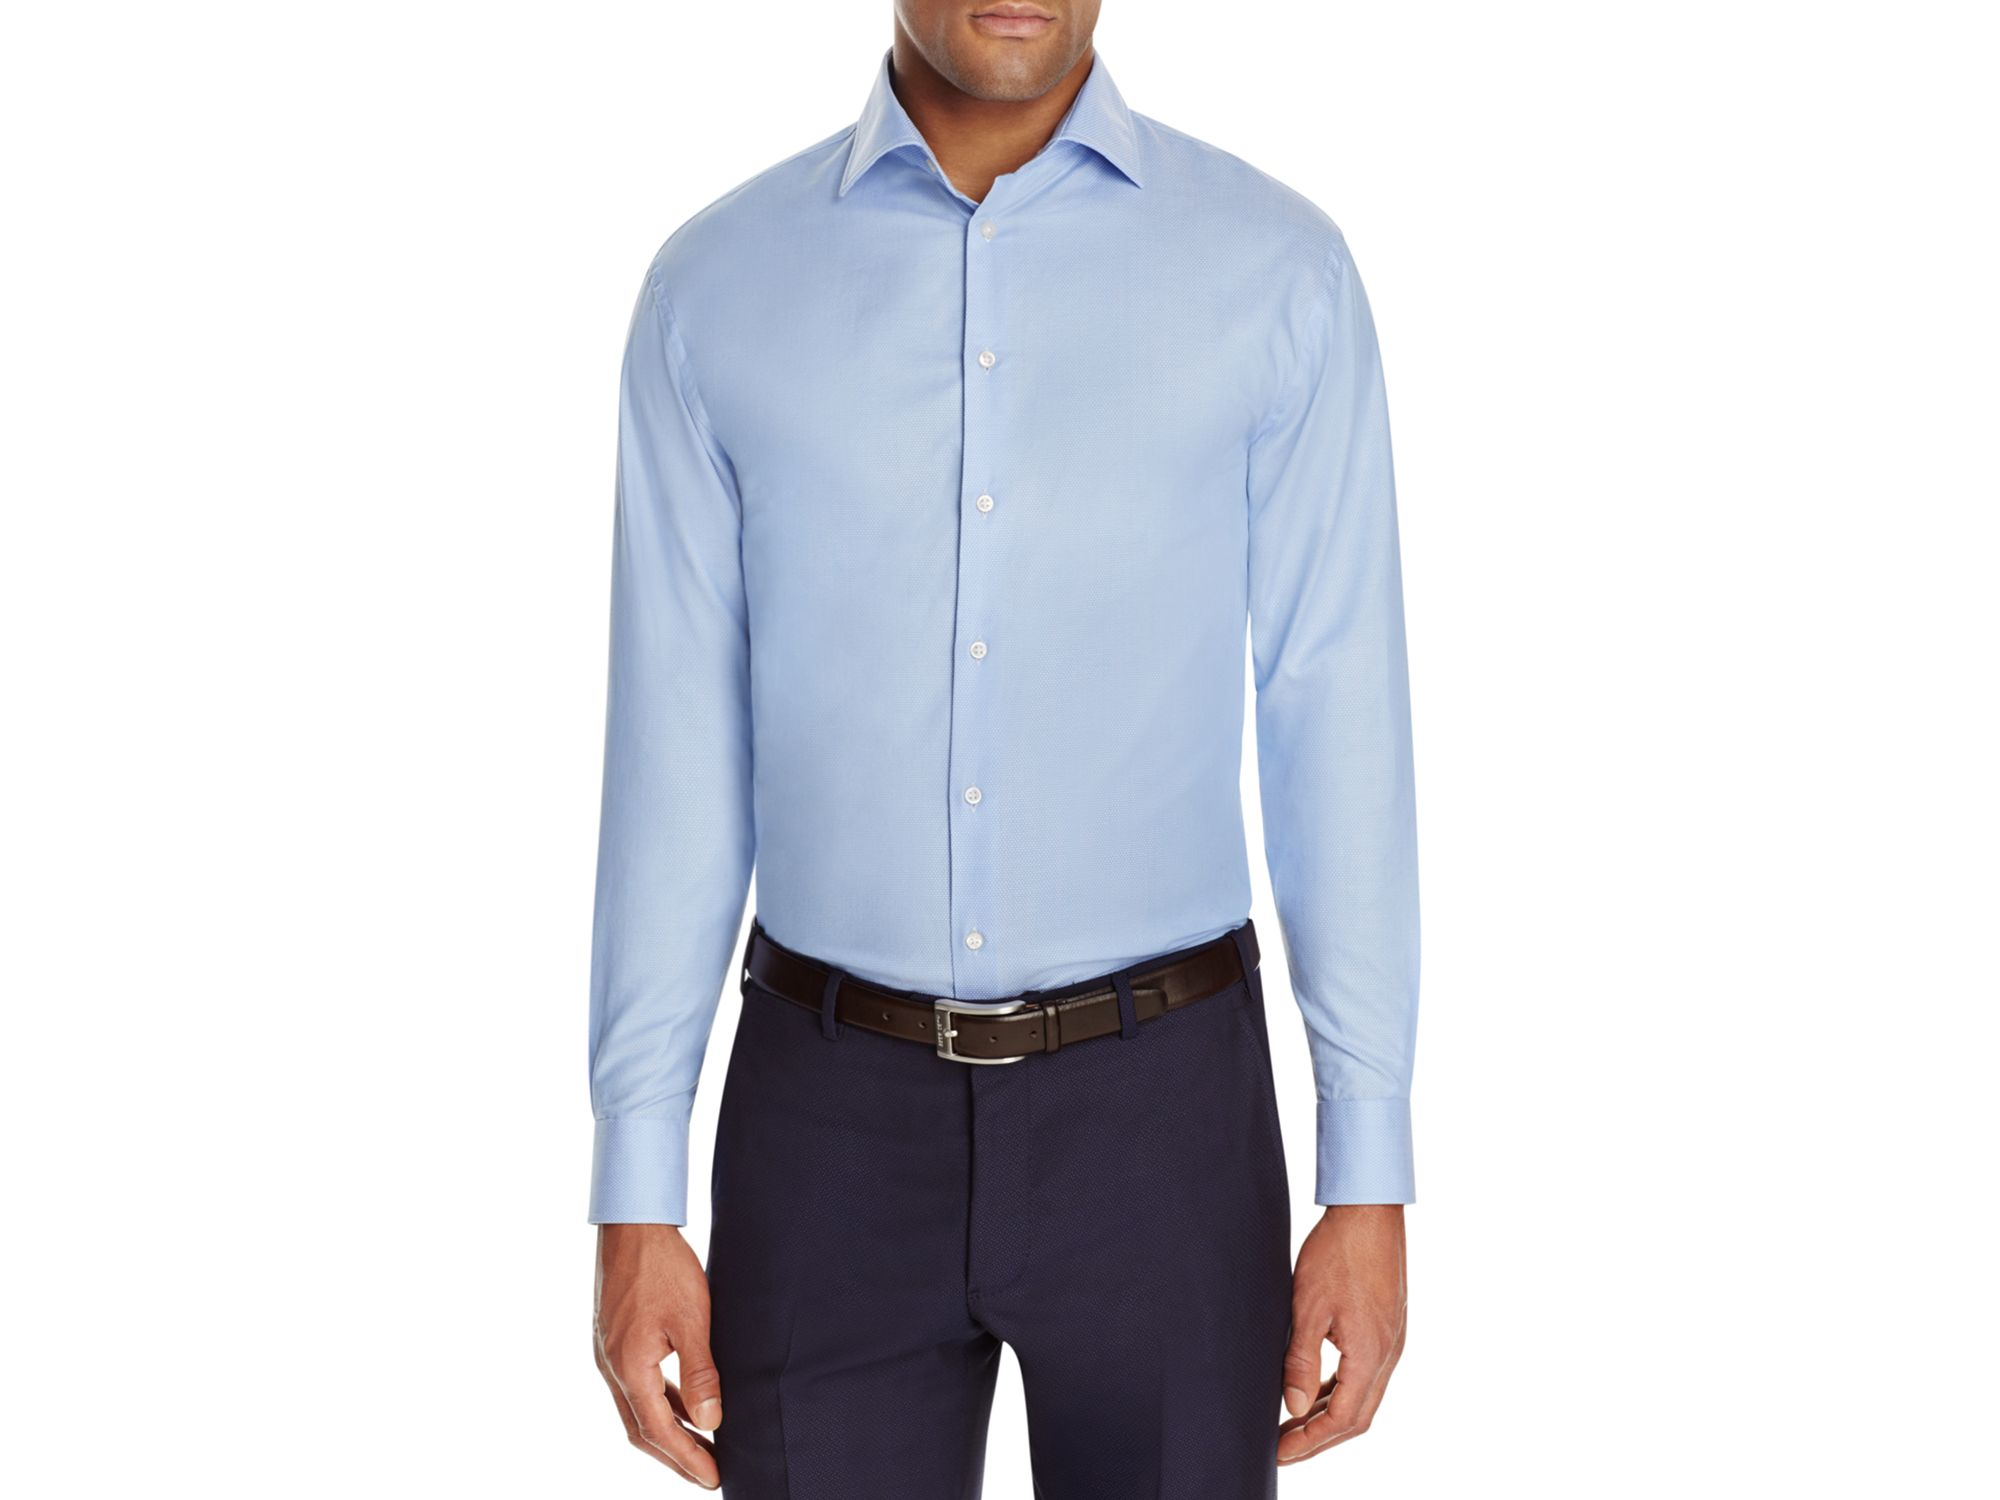 Armani Solid Regular Fit Button Down Shirt In Blue For Men